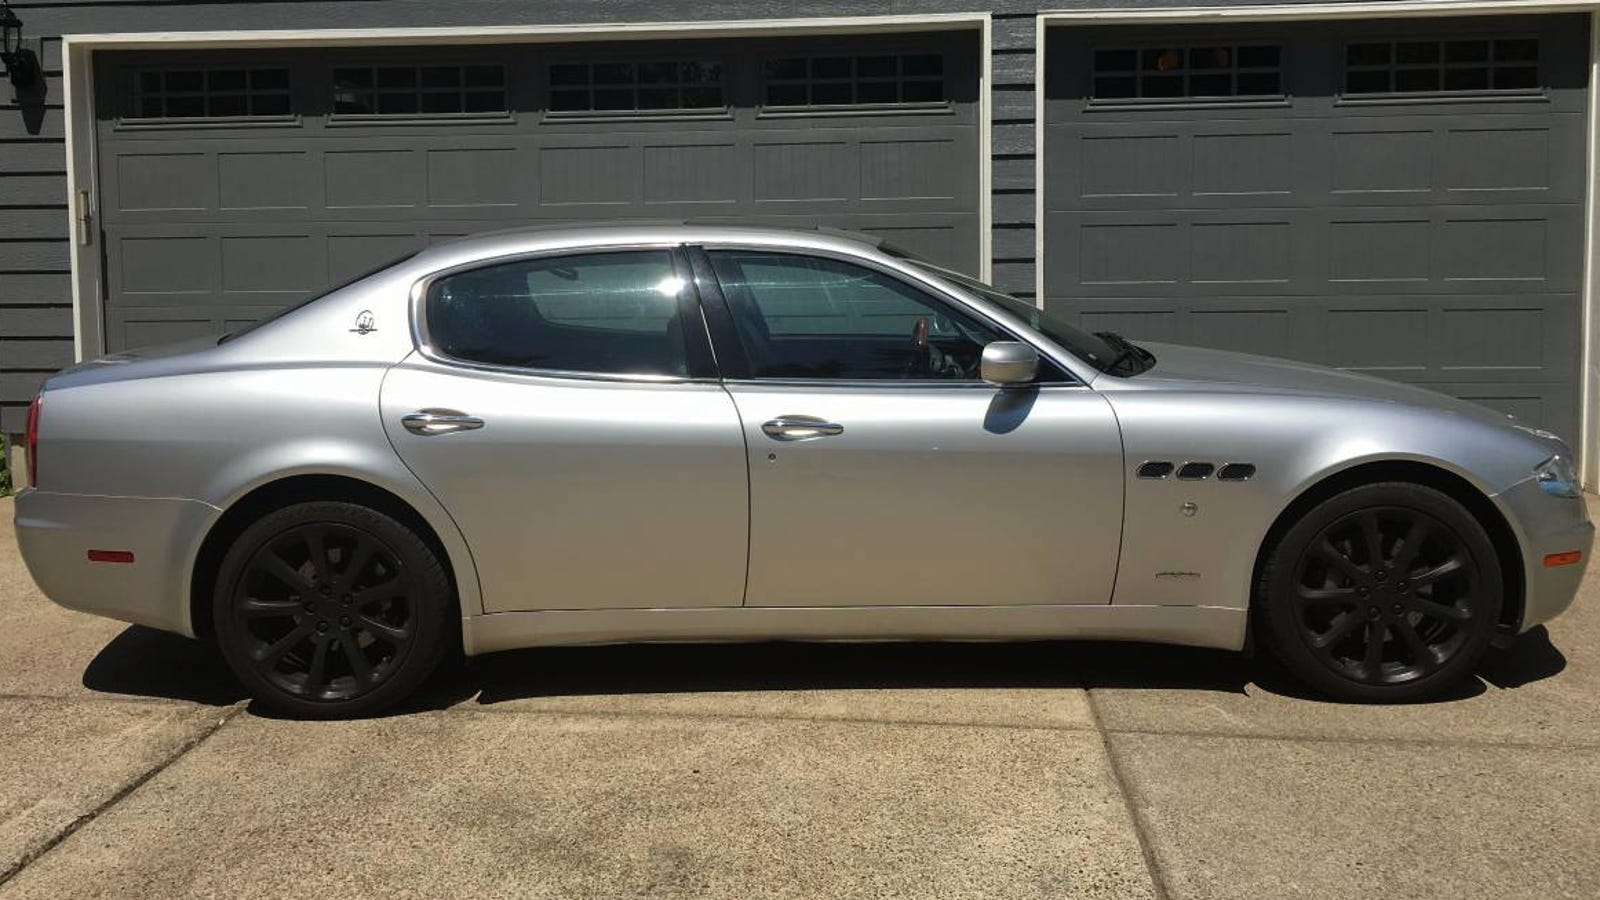 For 17500 Is This 2006 Maserati Quattroporte Worth It The Fuse Box Exhaust Note Alone